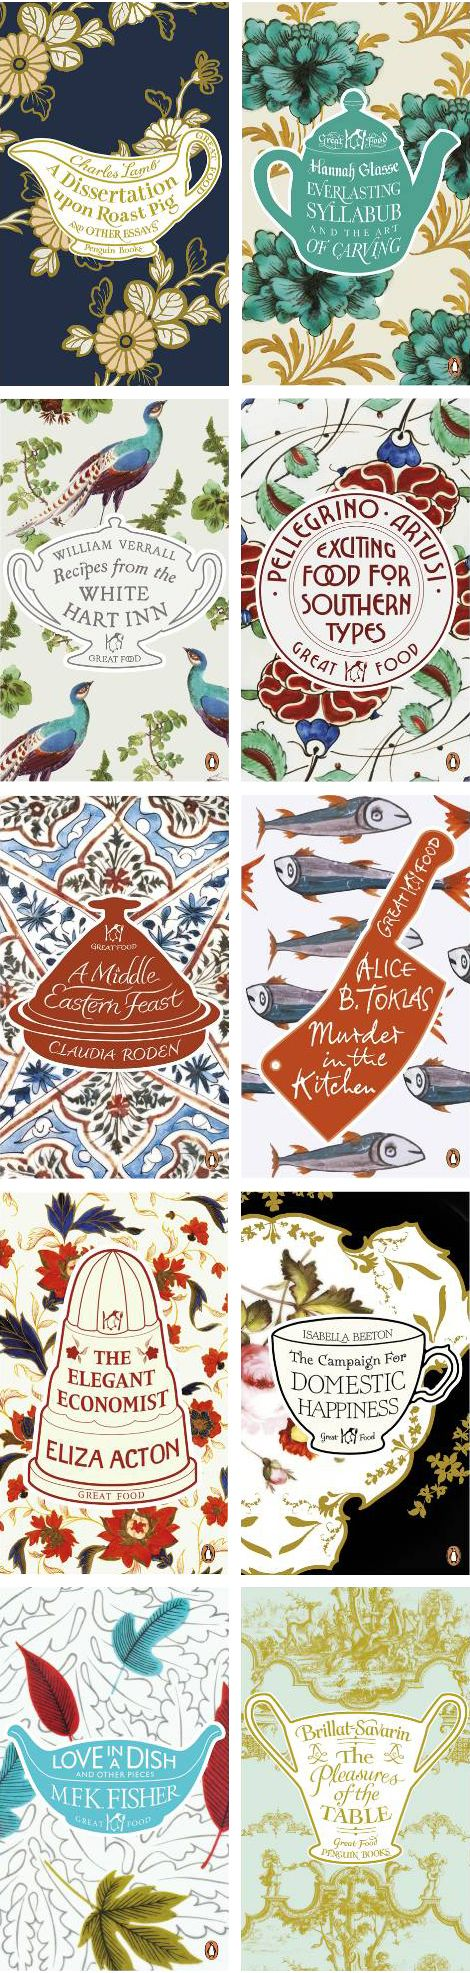 Penguin – Great Food, cover designs by Coralie Bickford-Smith (my interview w/ the designer: http://www.apartmenttherapy.com/great-food-an-i-142985